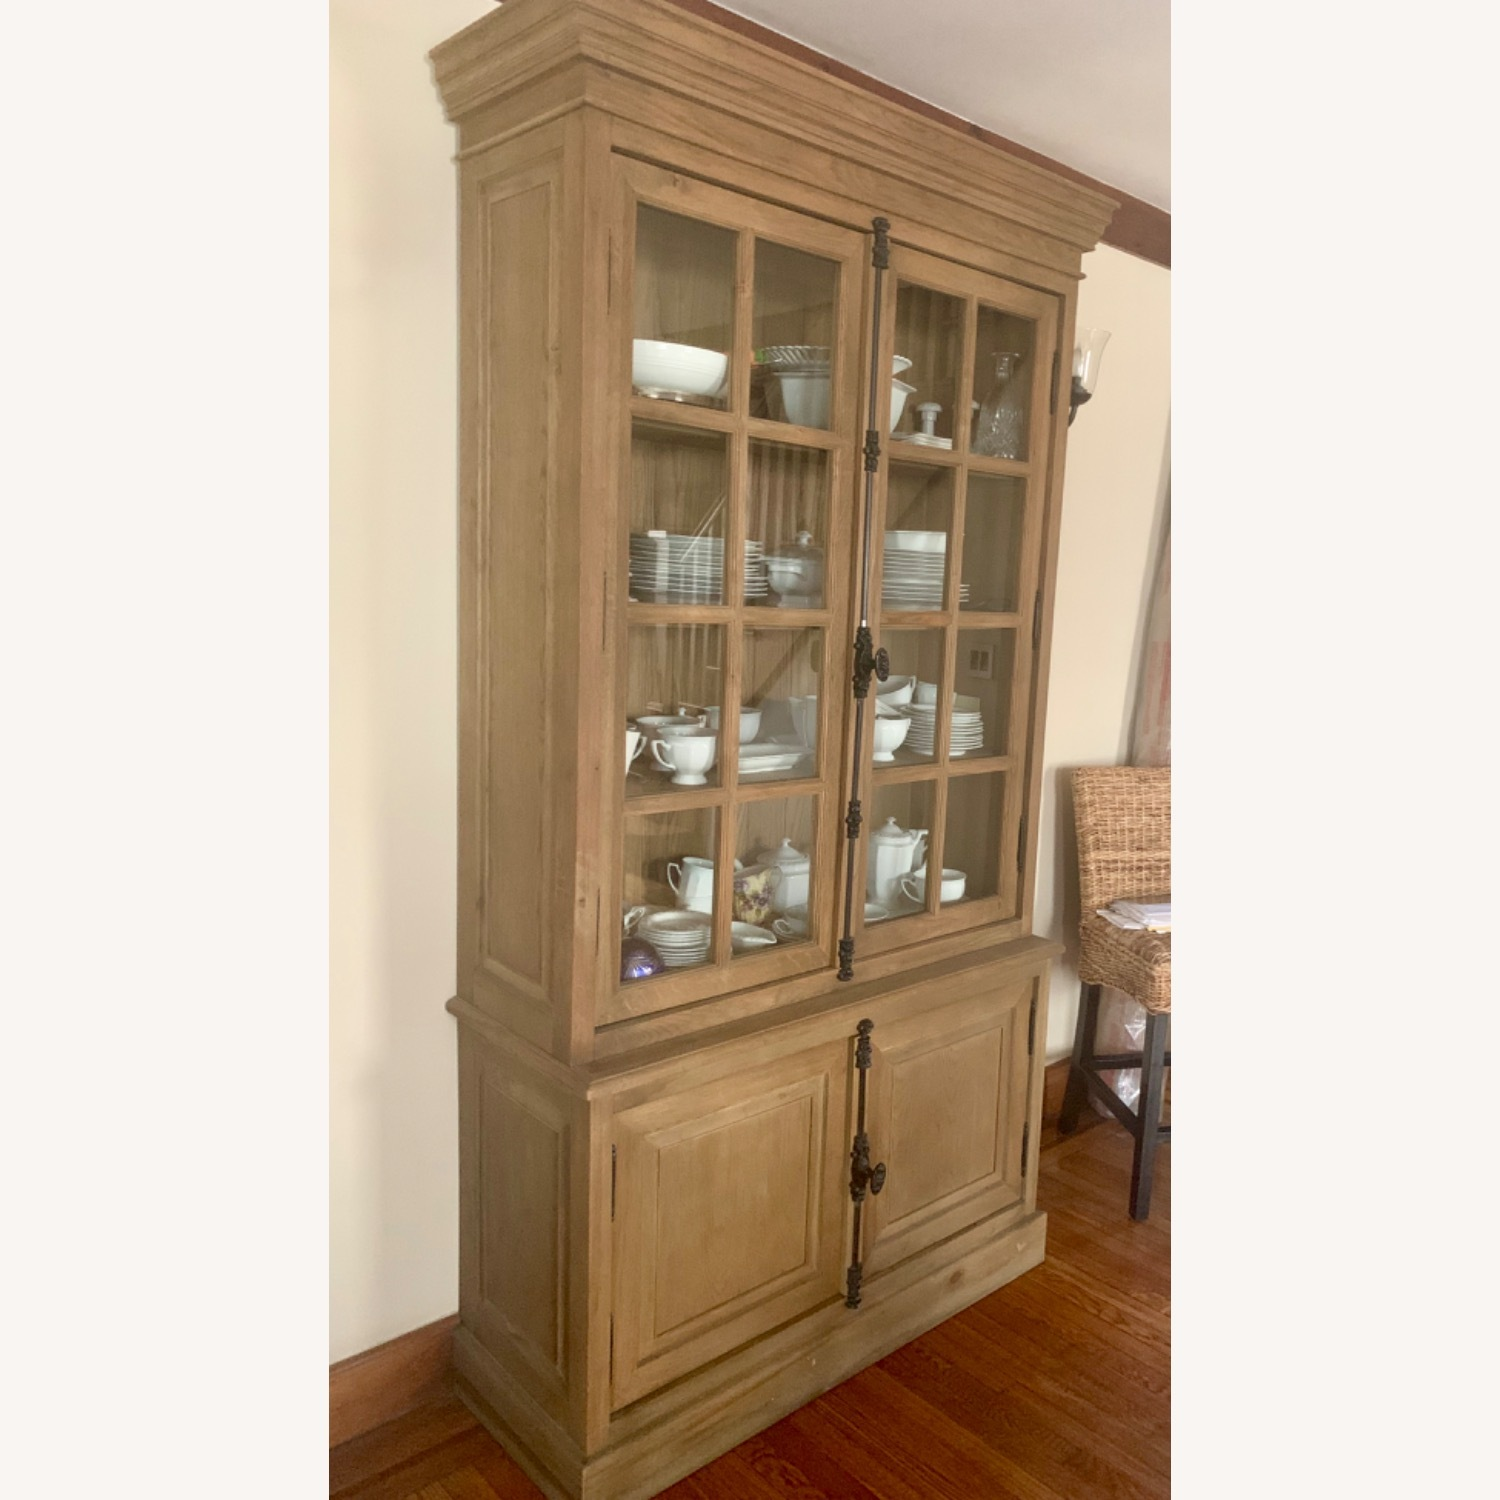 Restoration Hardware Oak French Cabinet - image-3